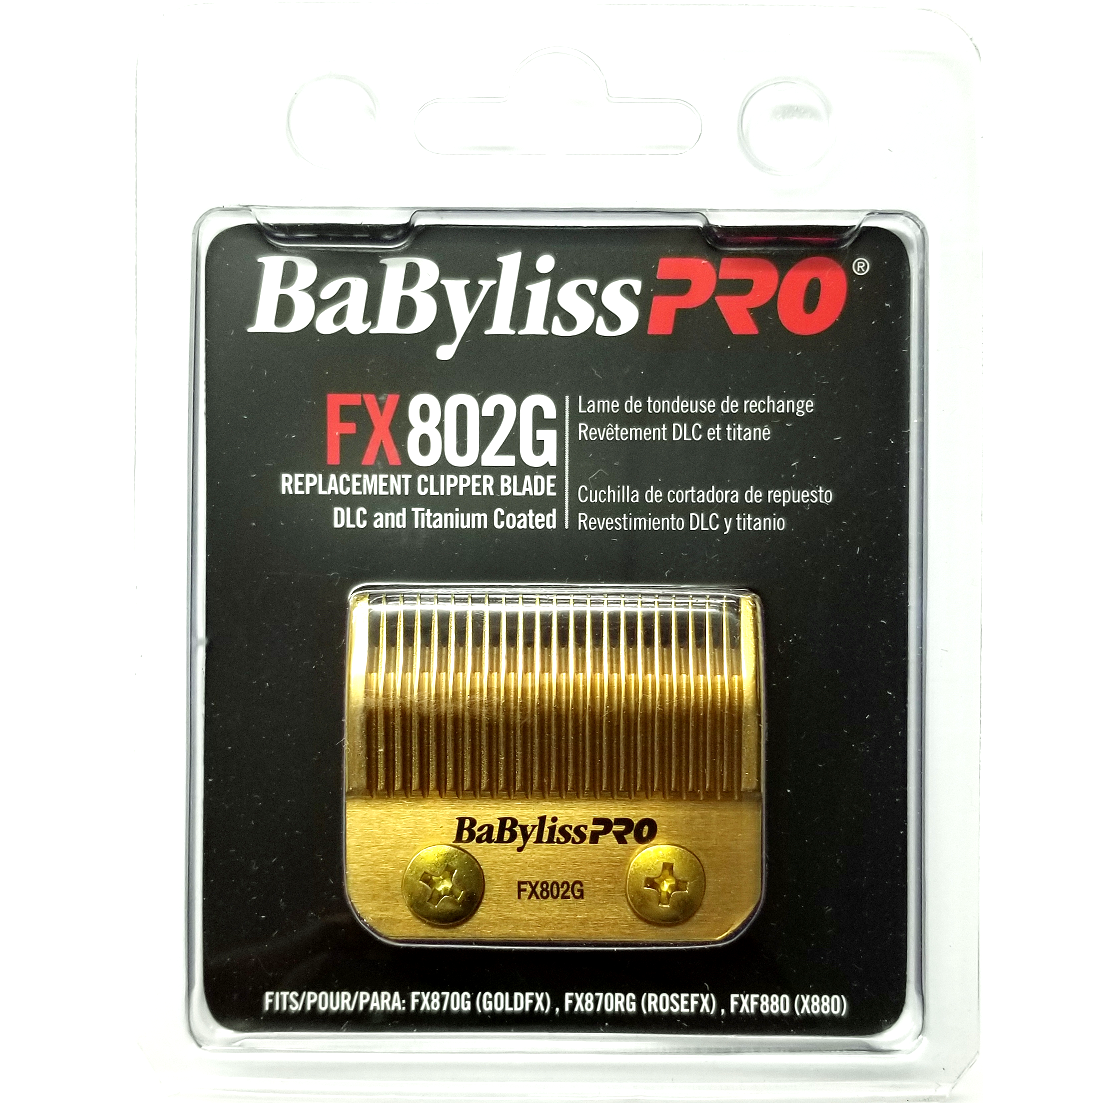 Babyliss Pro Dlc And Titanium Coated Replacement Clipper FX802G